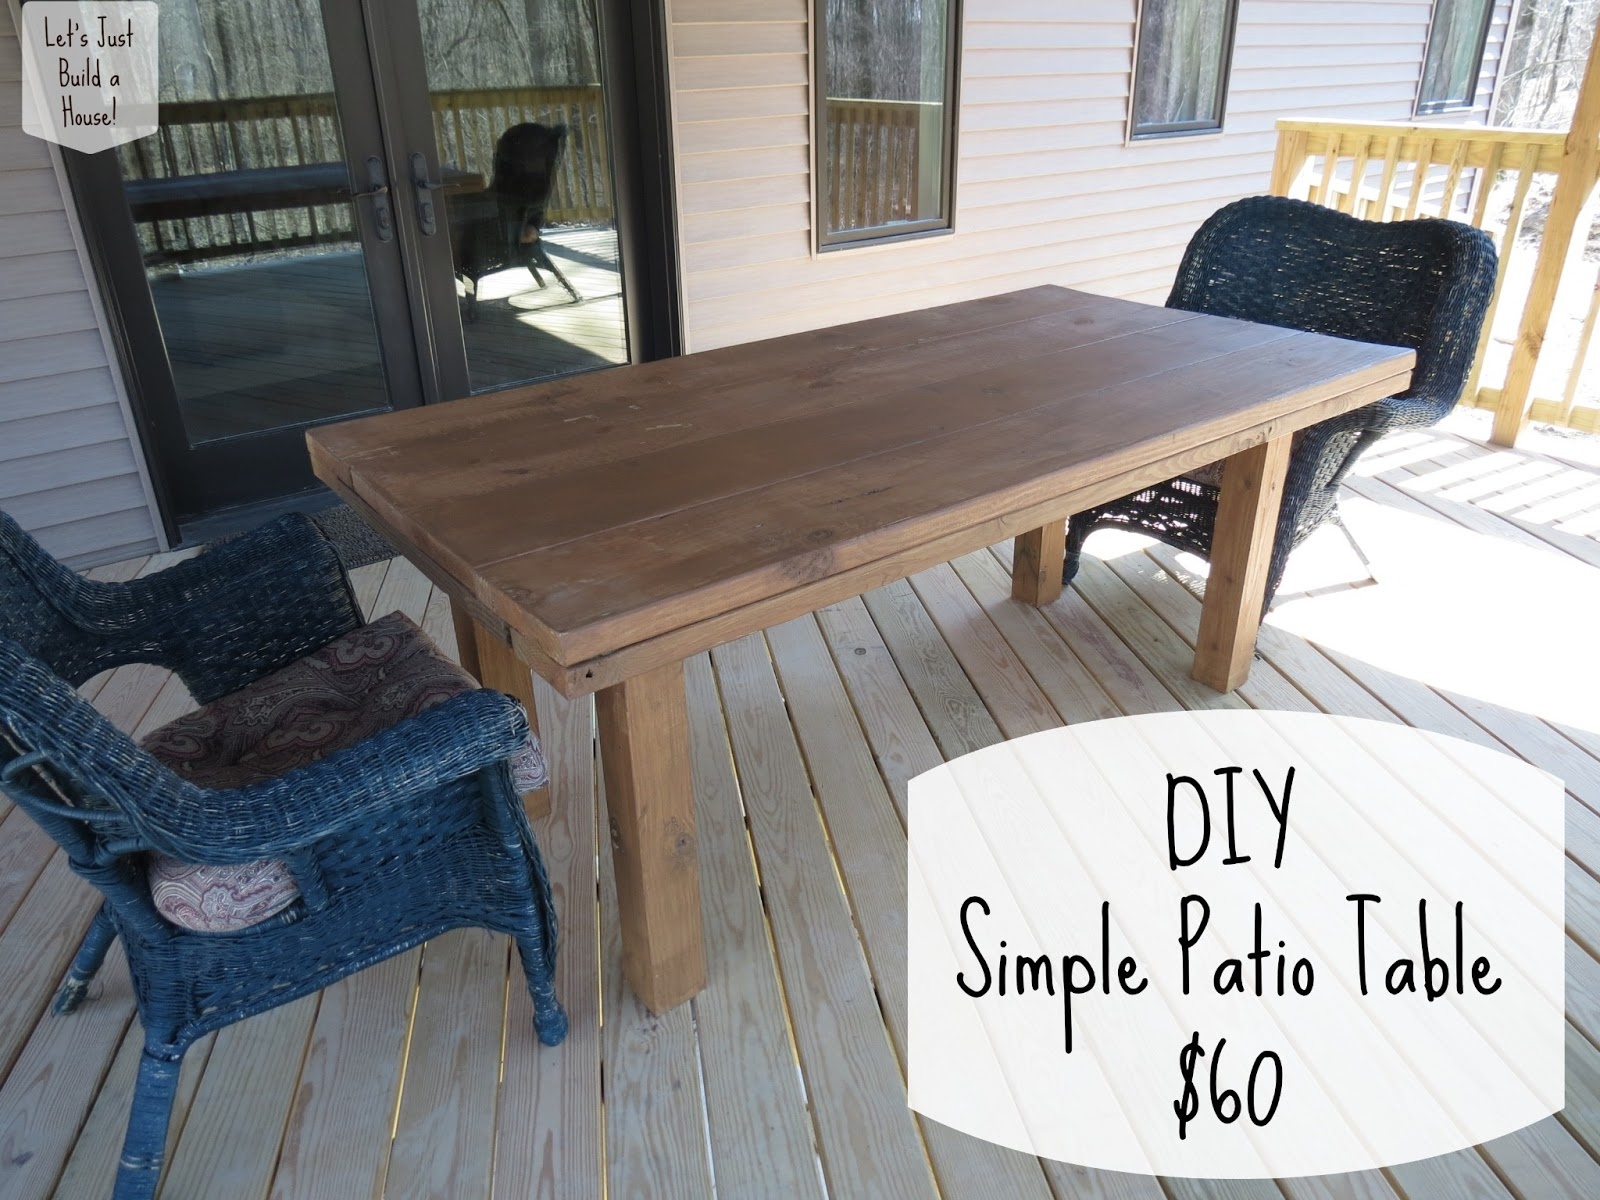 Backyard Table Diy : Lets Just Build a House! DIY Simple Patio Table Details